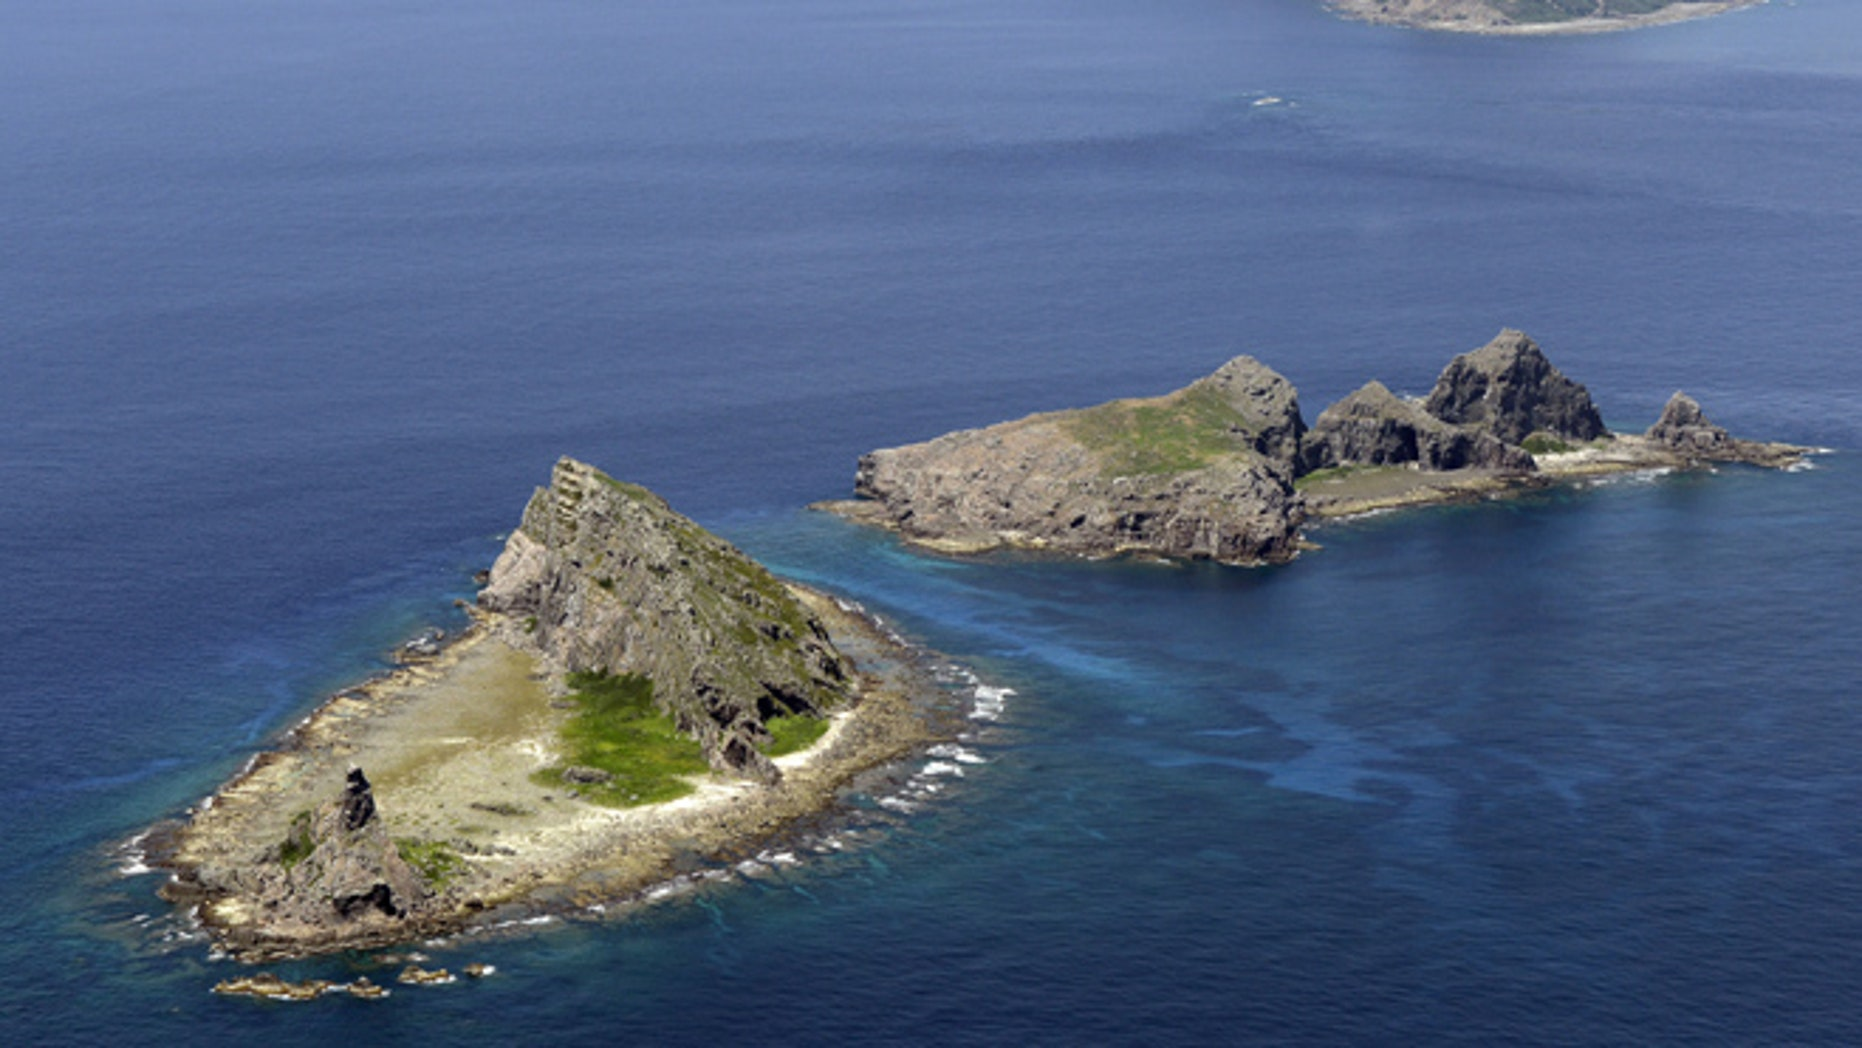 In this Sept. 2012 photo, the tiny islands in the East China Sea, called Senkaku in Japanese and Diaoyu in Chinese, are seen.